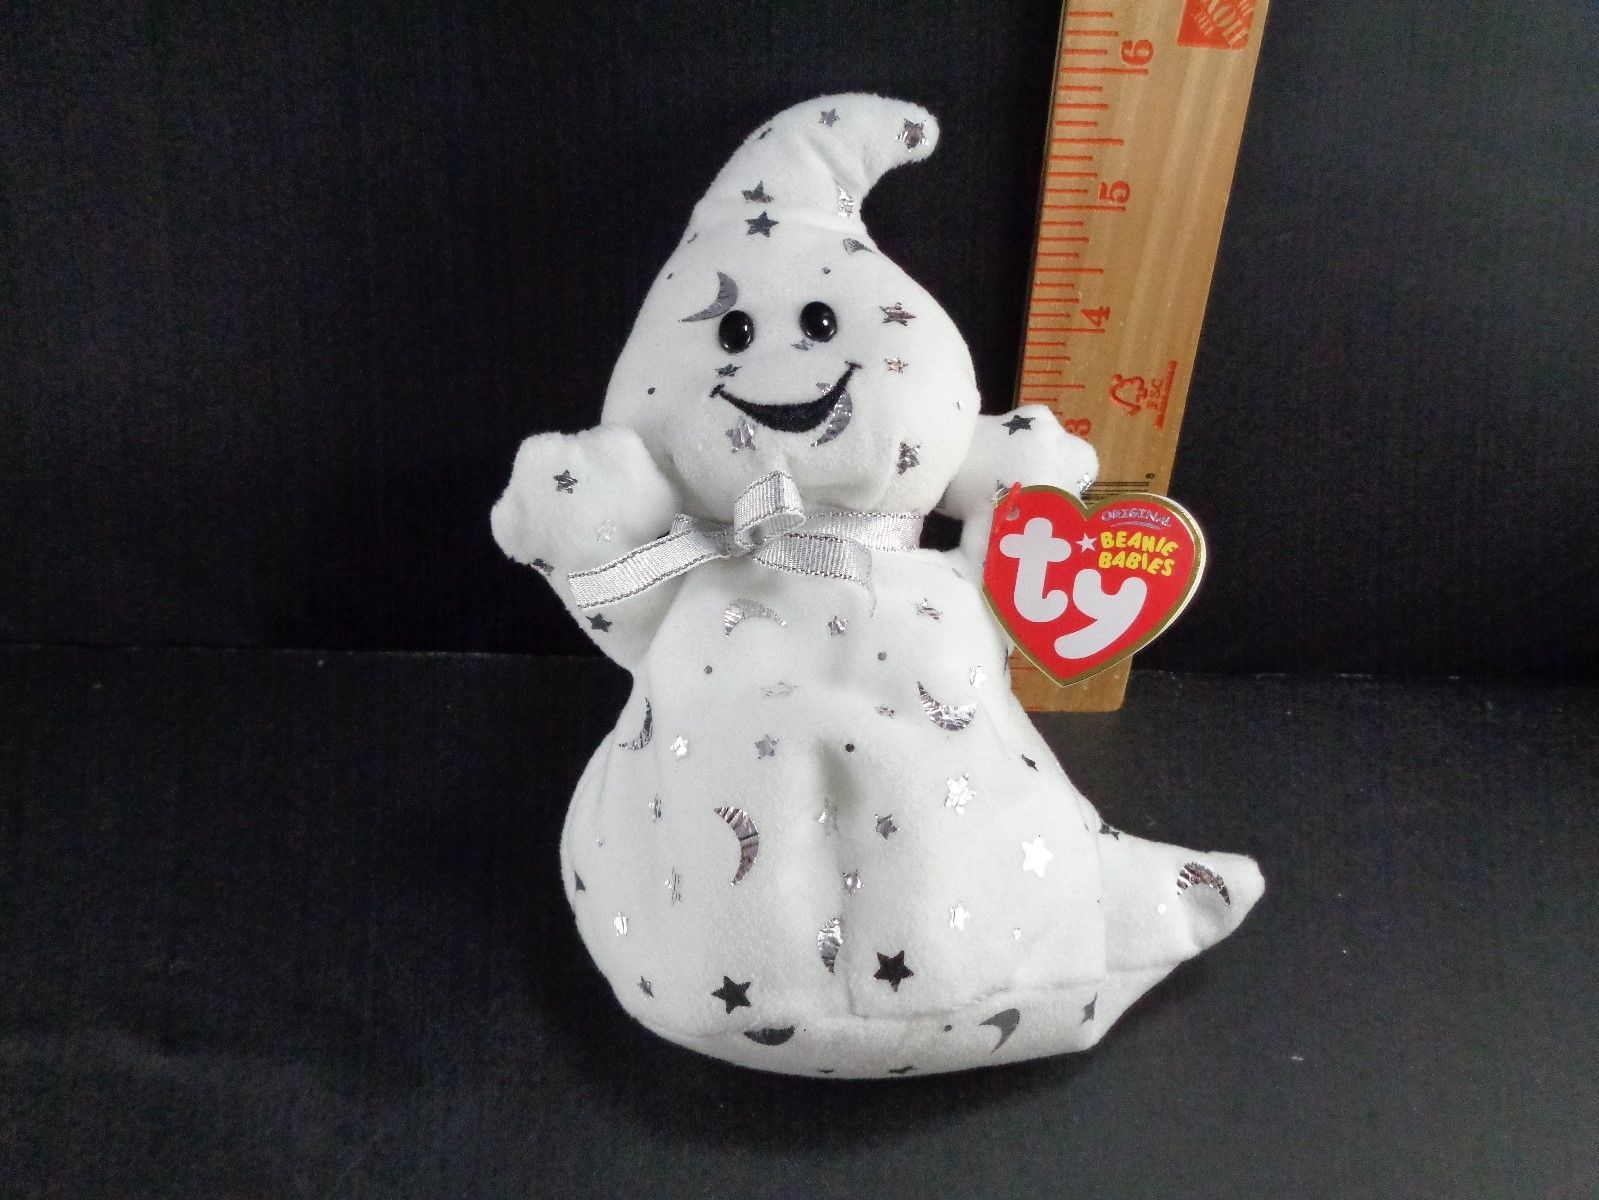 Halloween Ty Ghost Stars And Moon Vanish Plush Stuffed Animal Toy Doll image 1